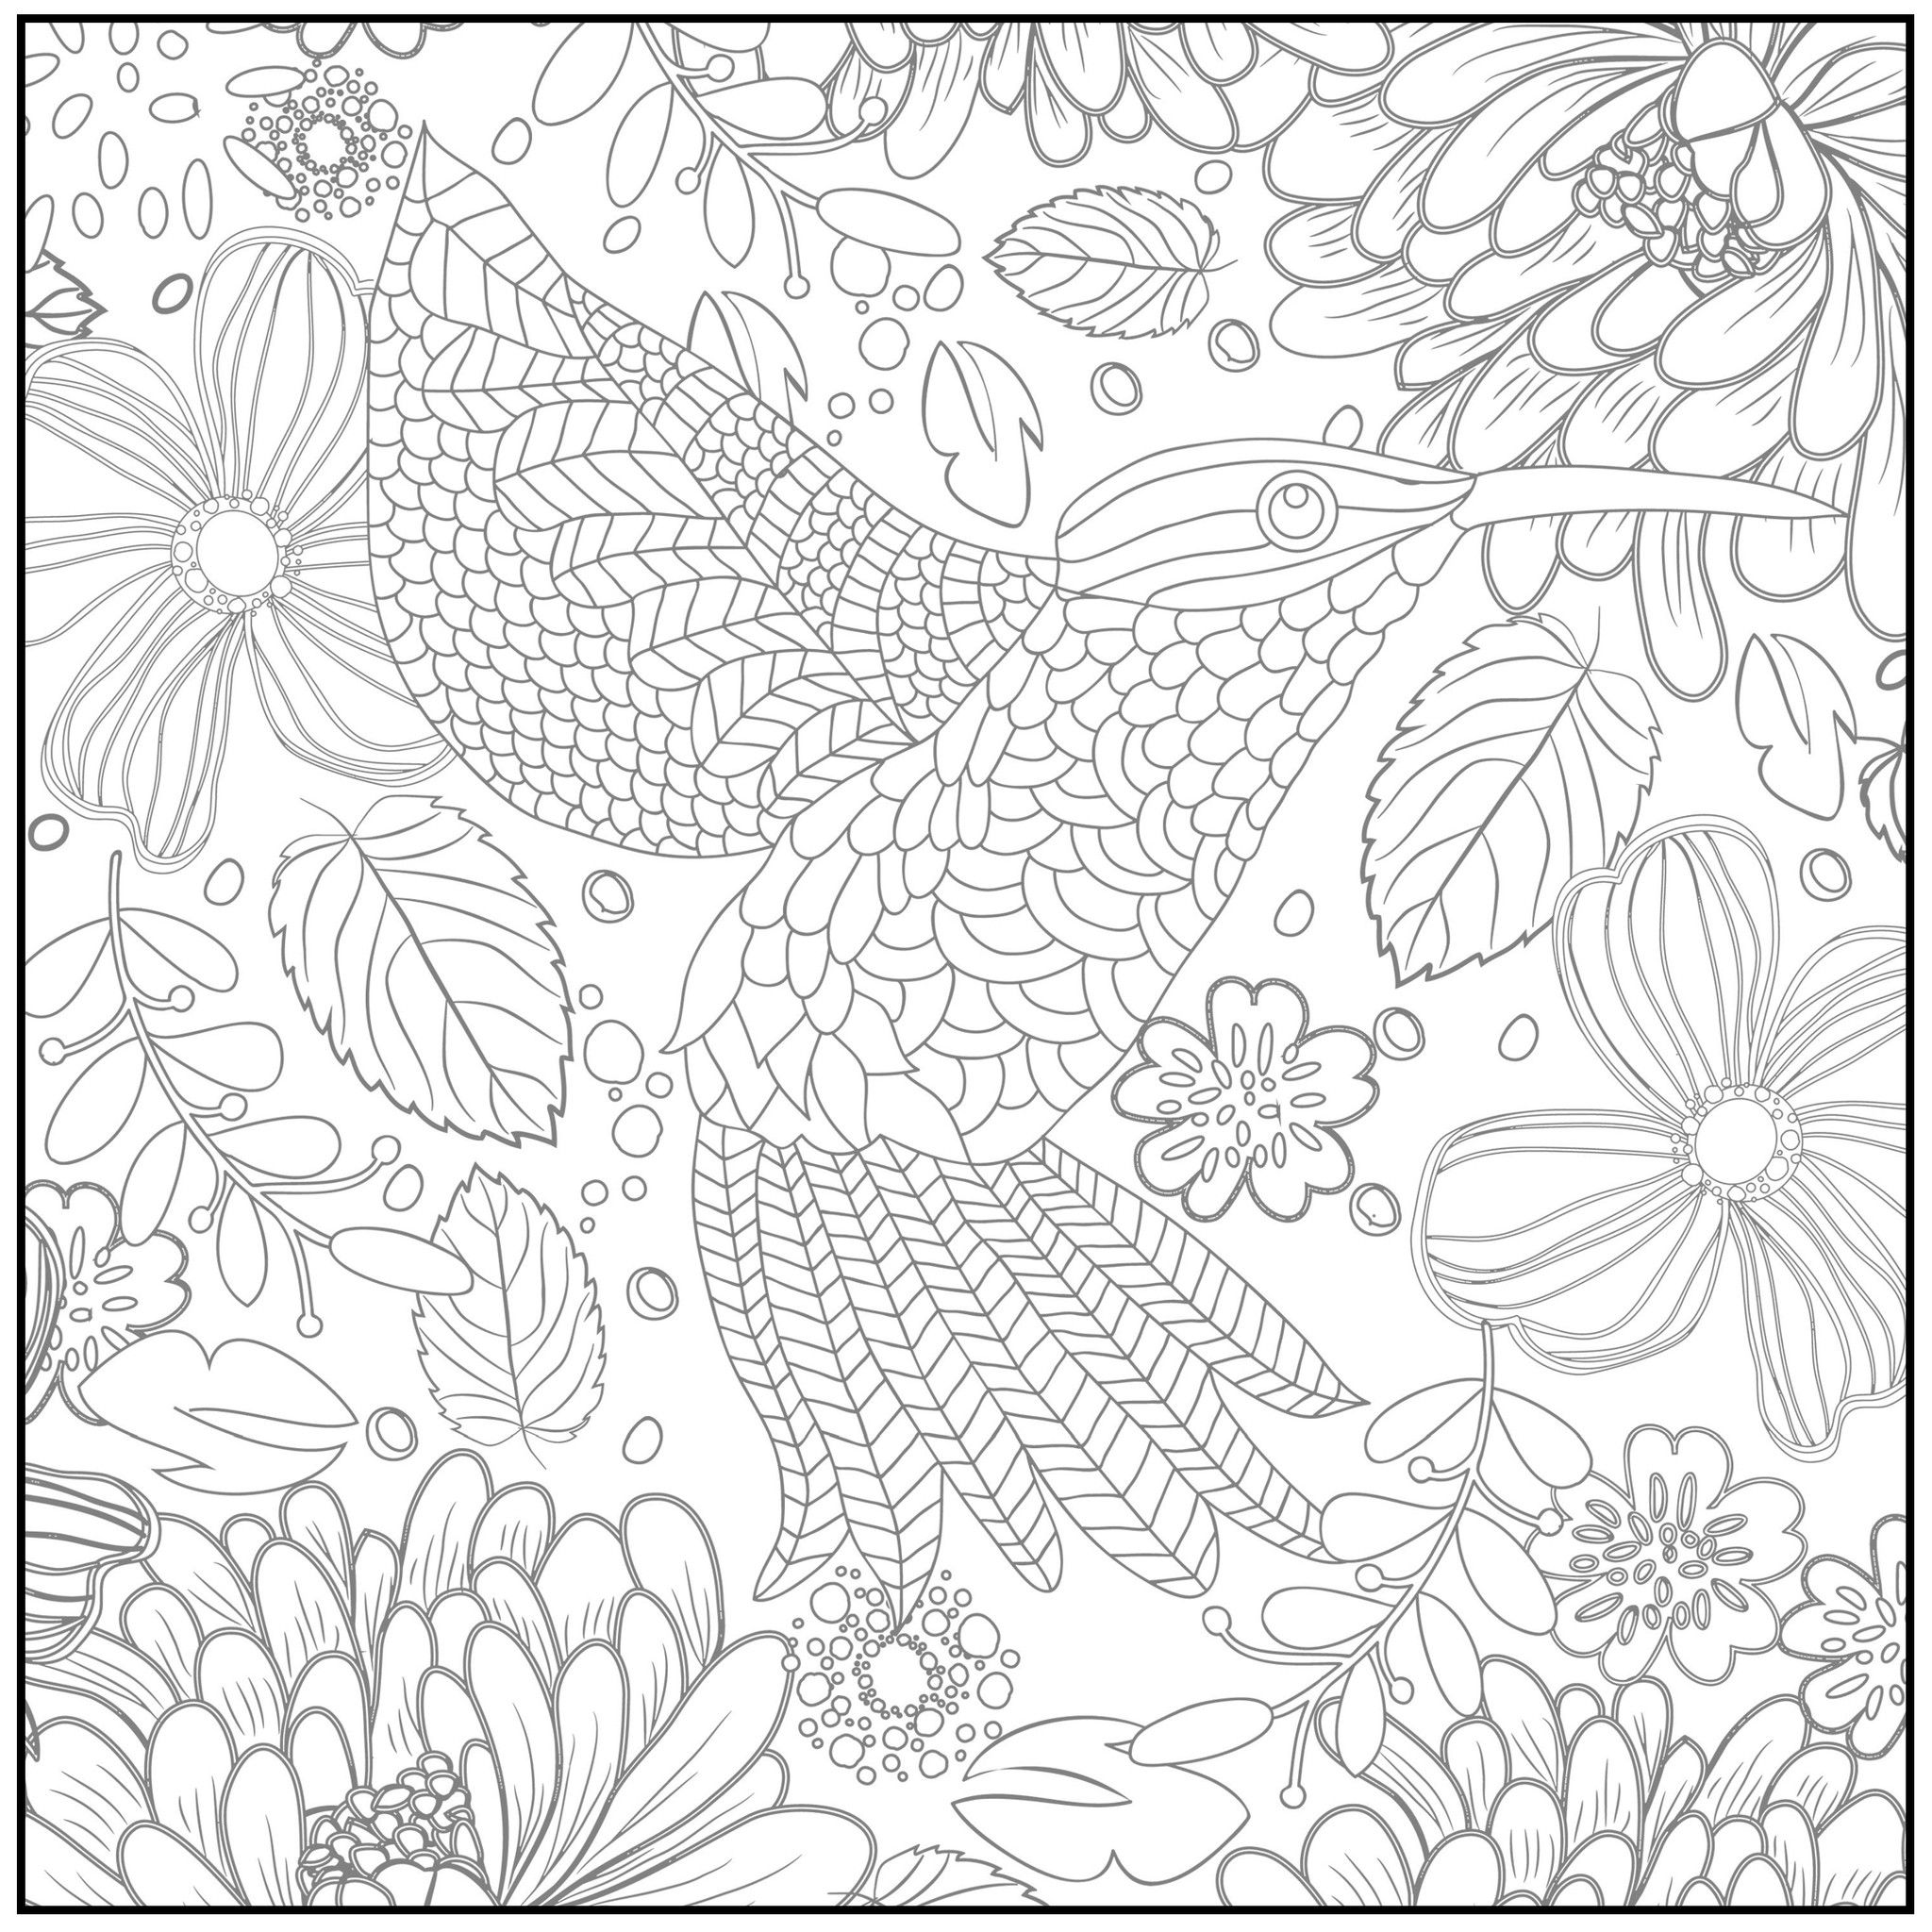 Adult Coloring Pages Free Spring - Coloring Home | free printable spring coloring pages for adults